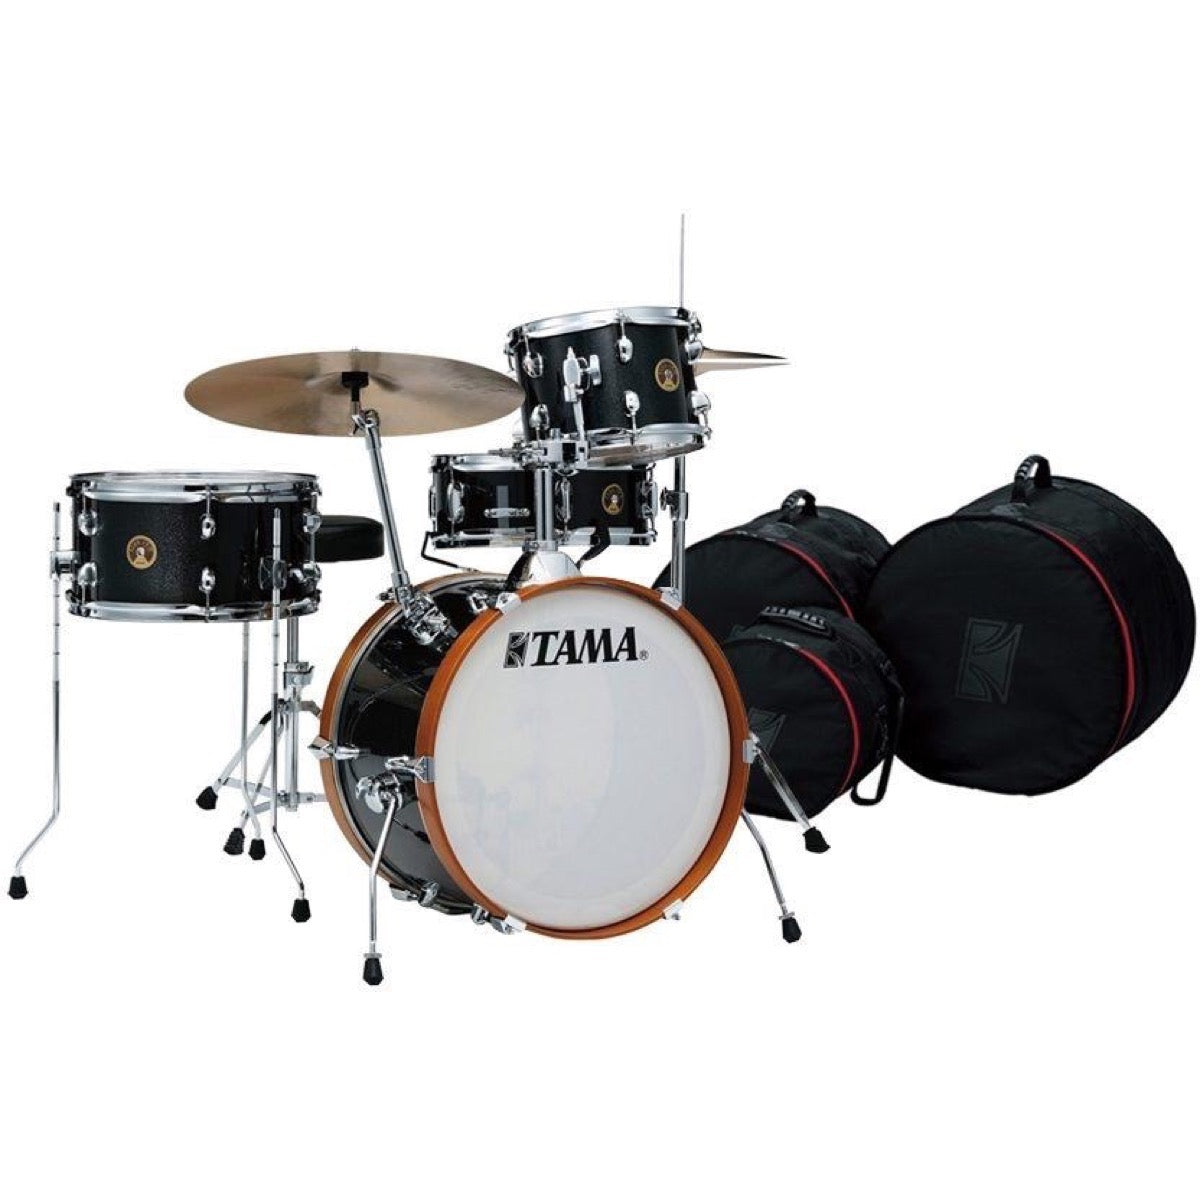 Tama Club Jam Drum Shell Kit, 4-Piece, Charcoal Mist, with Drum Bags